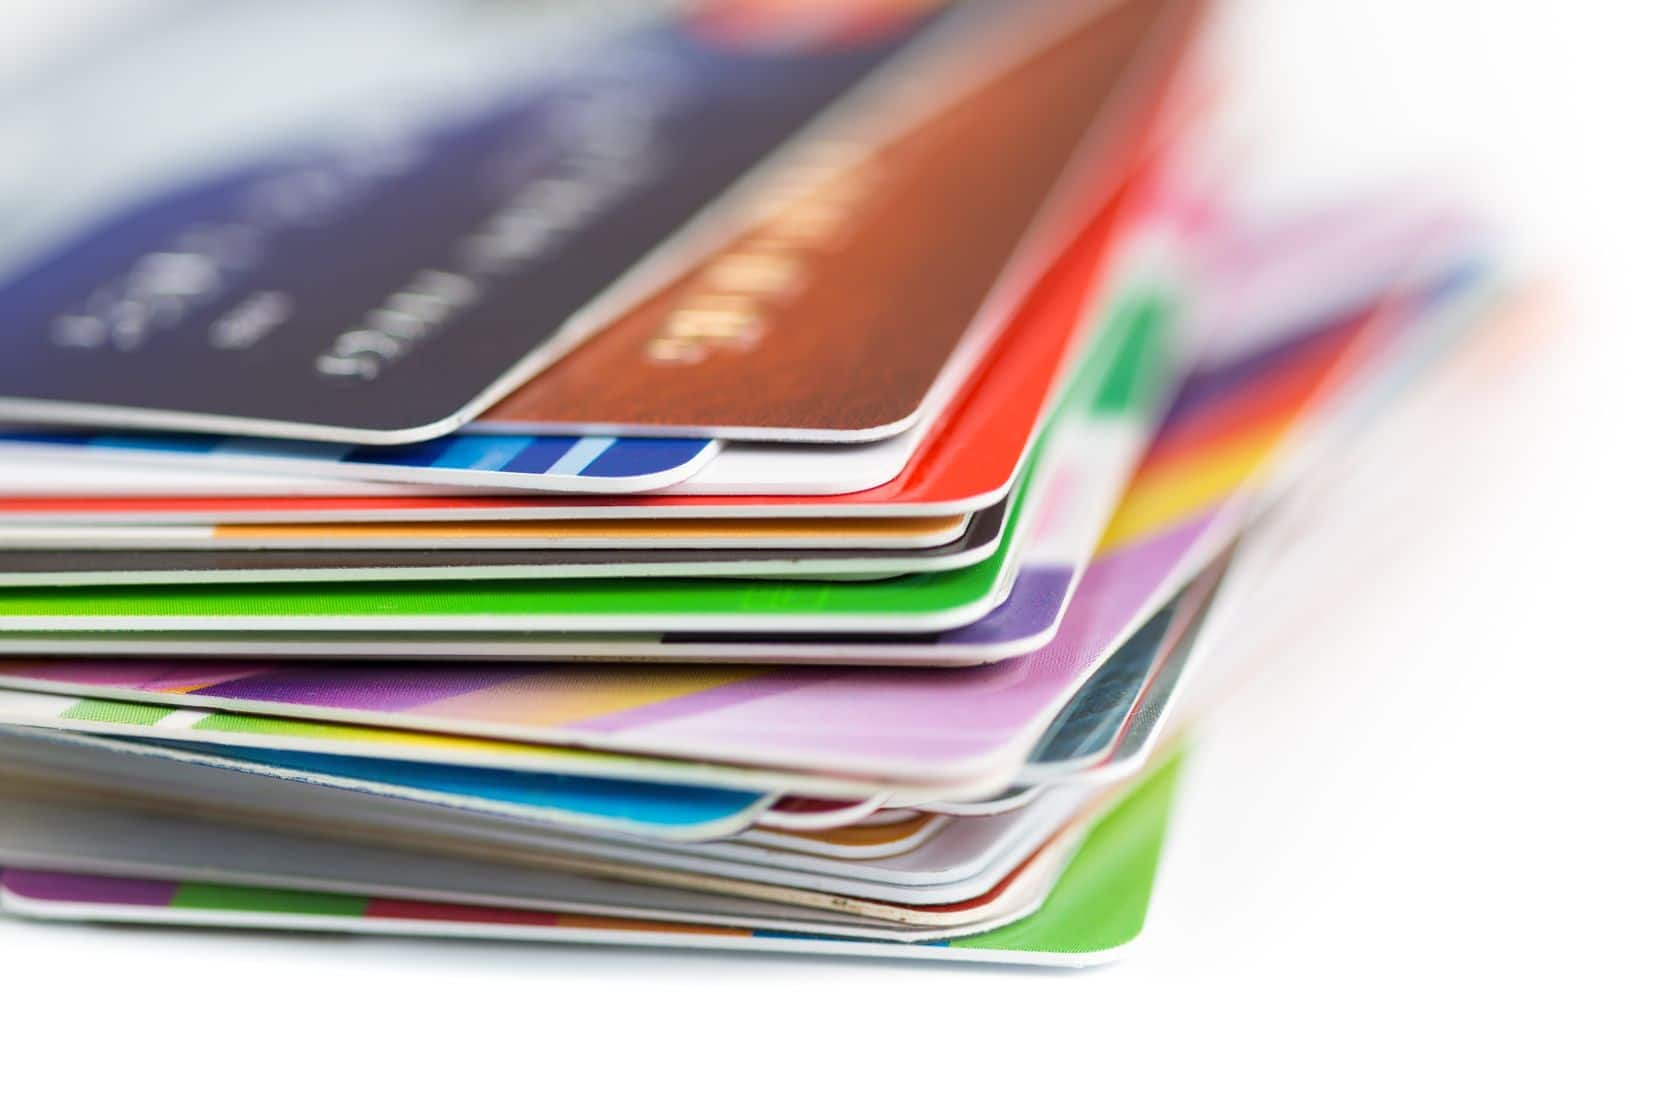 The discounts offered by credit cards when you open an account are tempting.